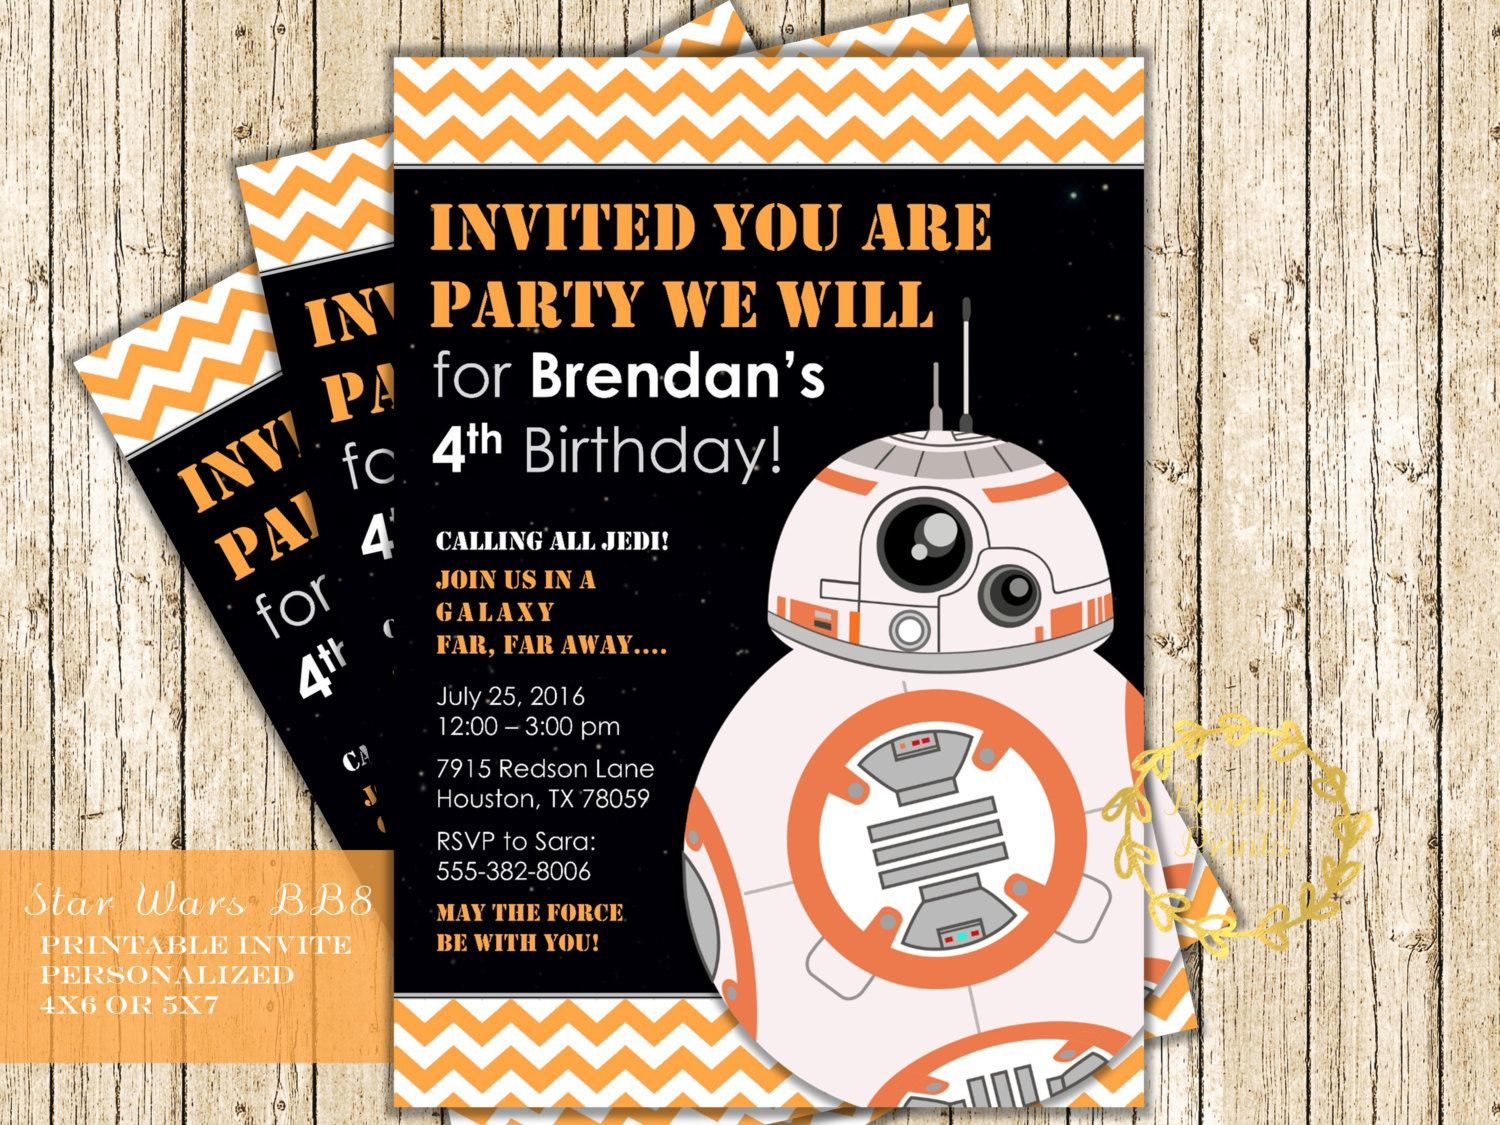 Bb8 Invitation Star Wars Party Invitation Digital Printable Birthday